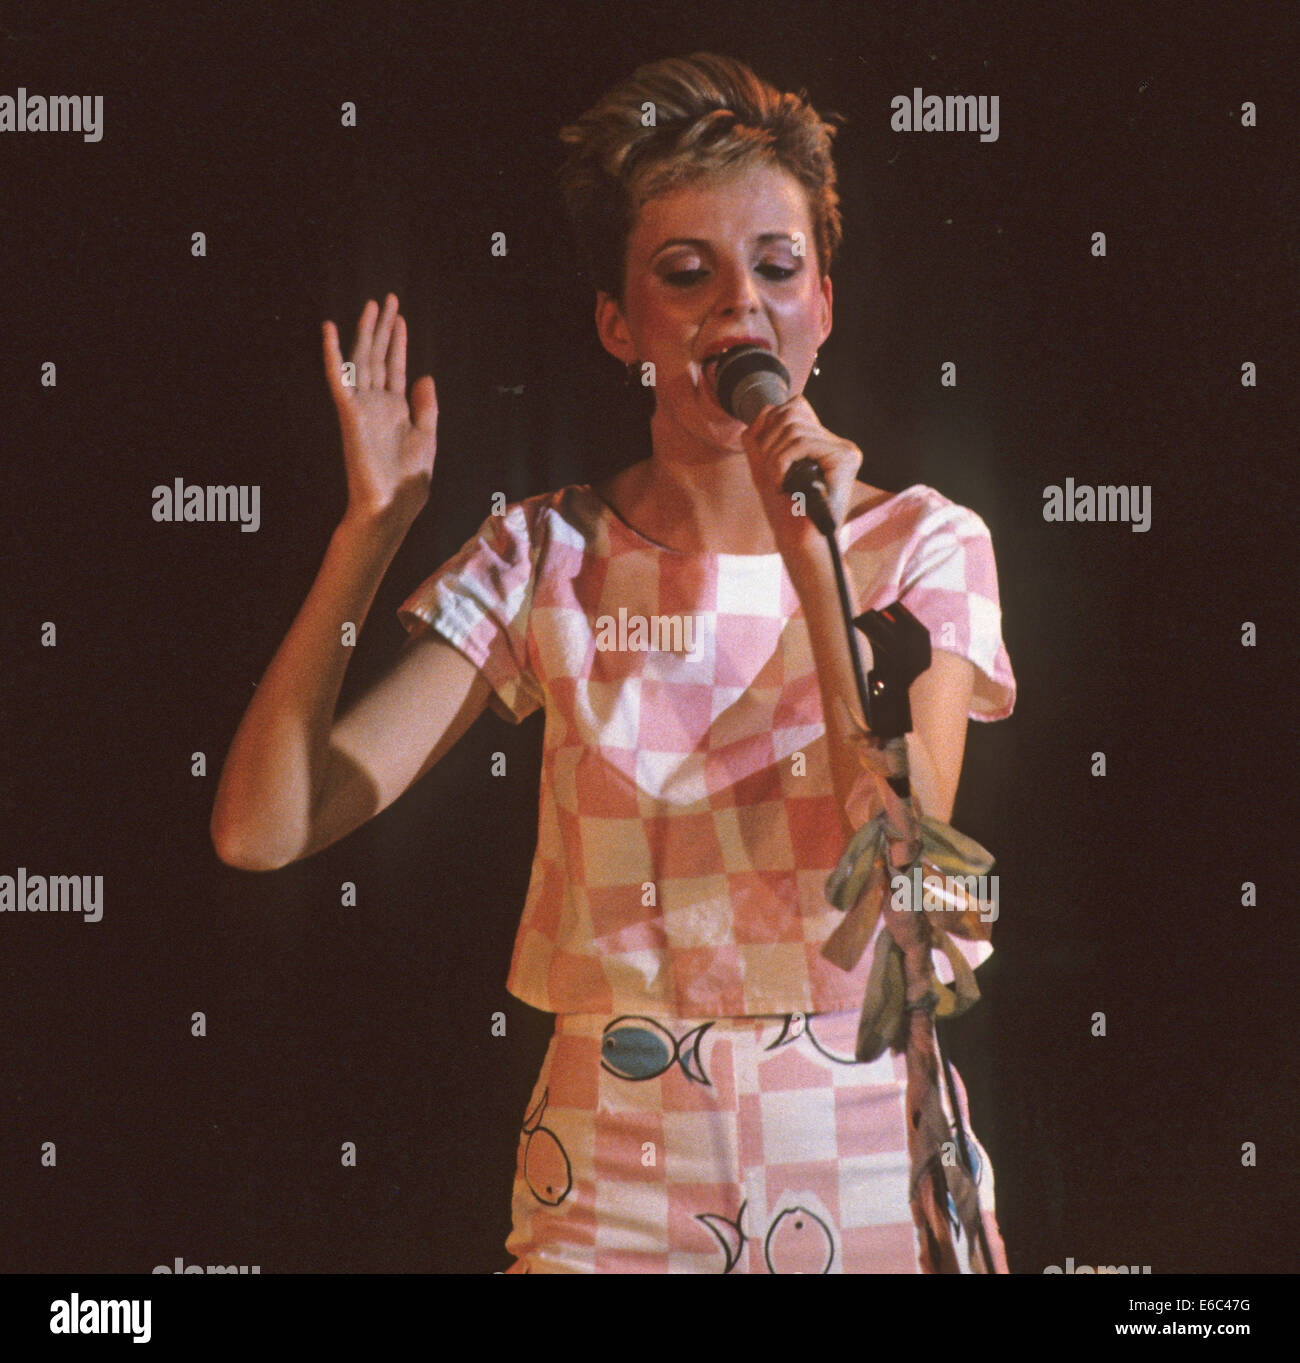 ALTERED IMAGES groupe britannique avec Claire Grogan en 1982 Photo Stock